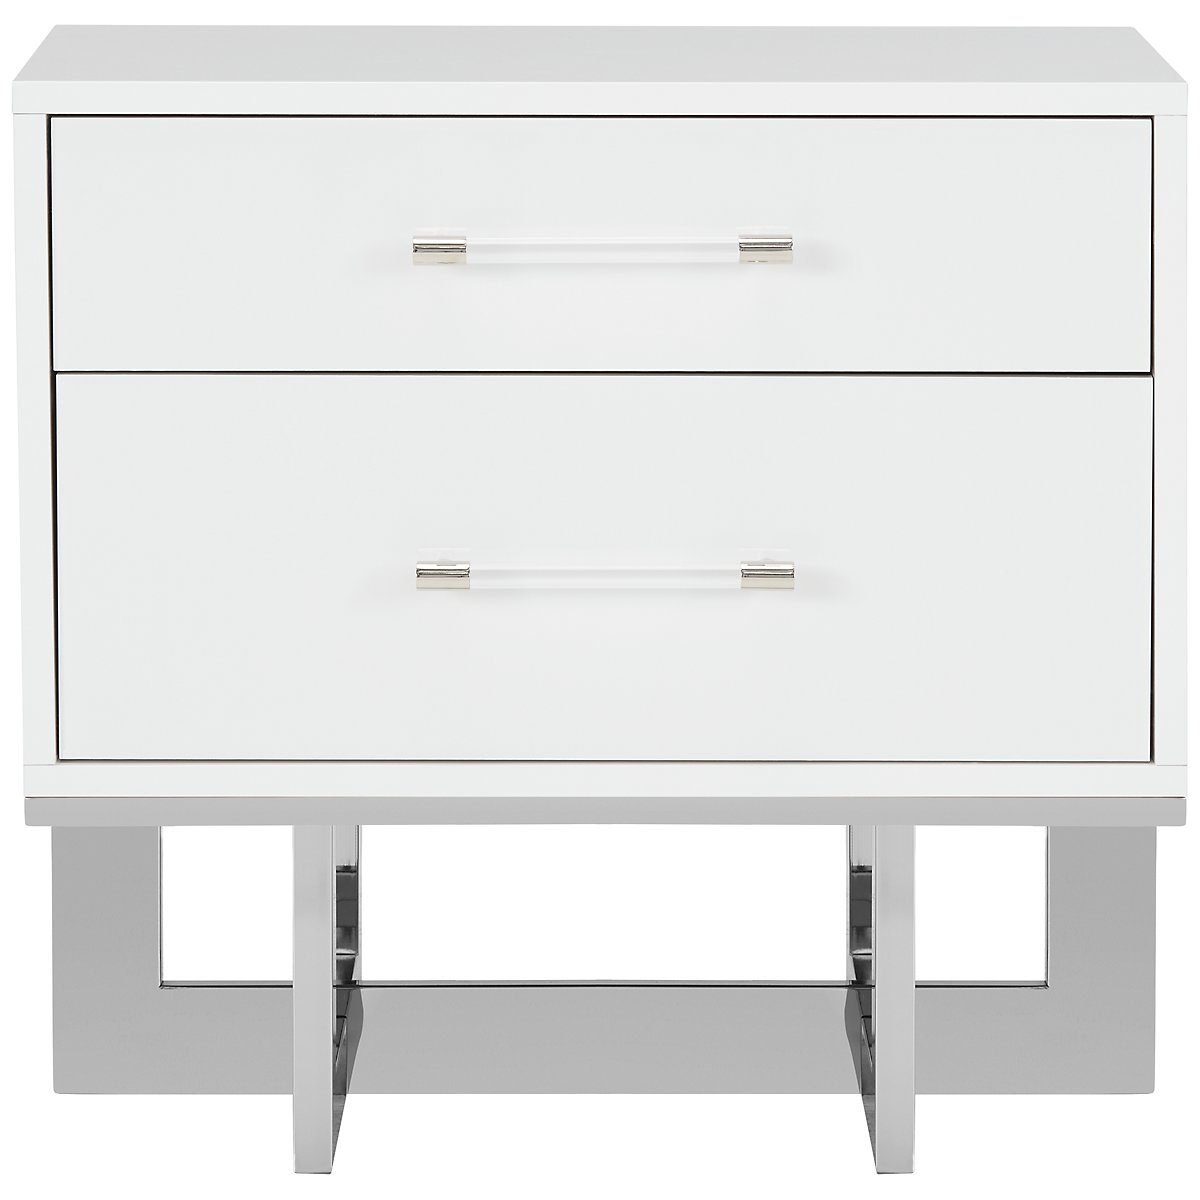 city furniture cortina white nightstand storage pedestal accent table craigslist leather couch gold kitchen hardware ashley sofa mirrored desk floating shelf kit oak beach chairs